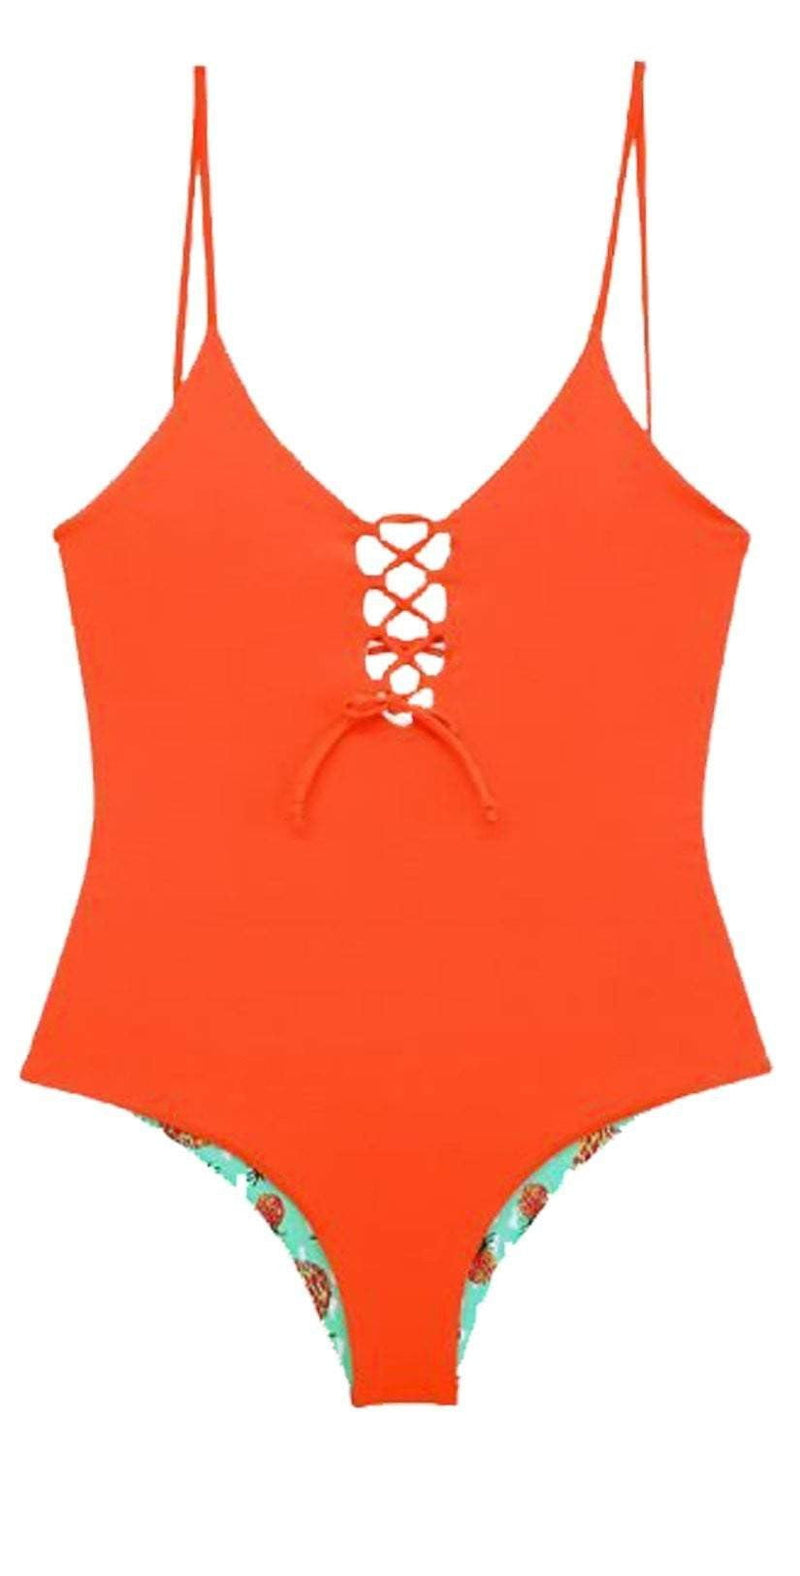 Maylana Kamila Grapefruit One Piece MA17-E01-PGR: